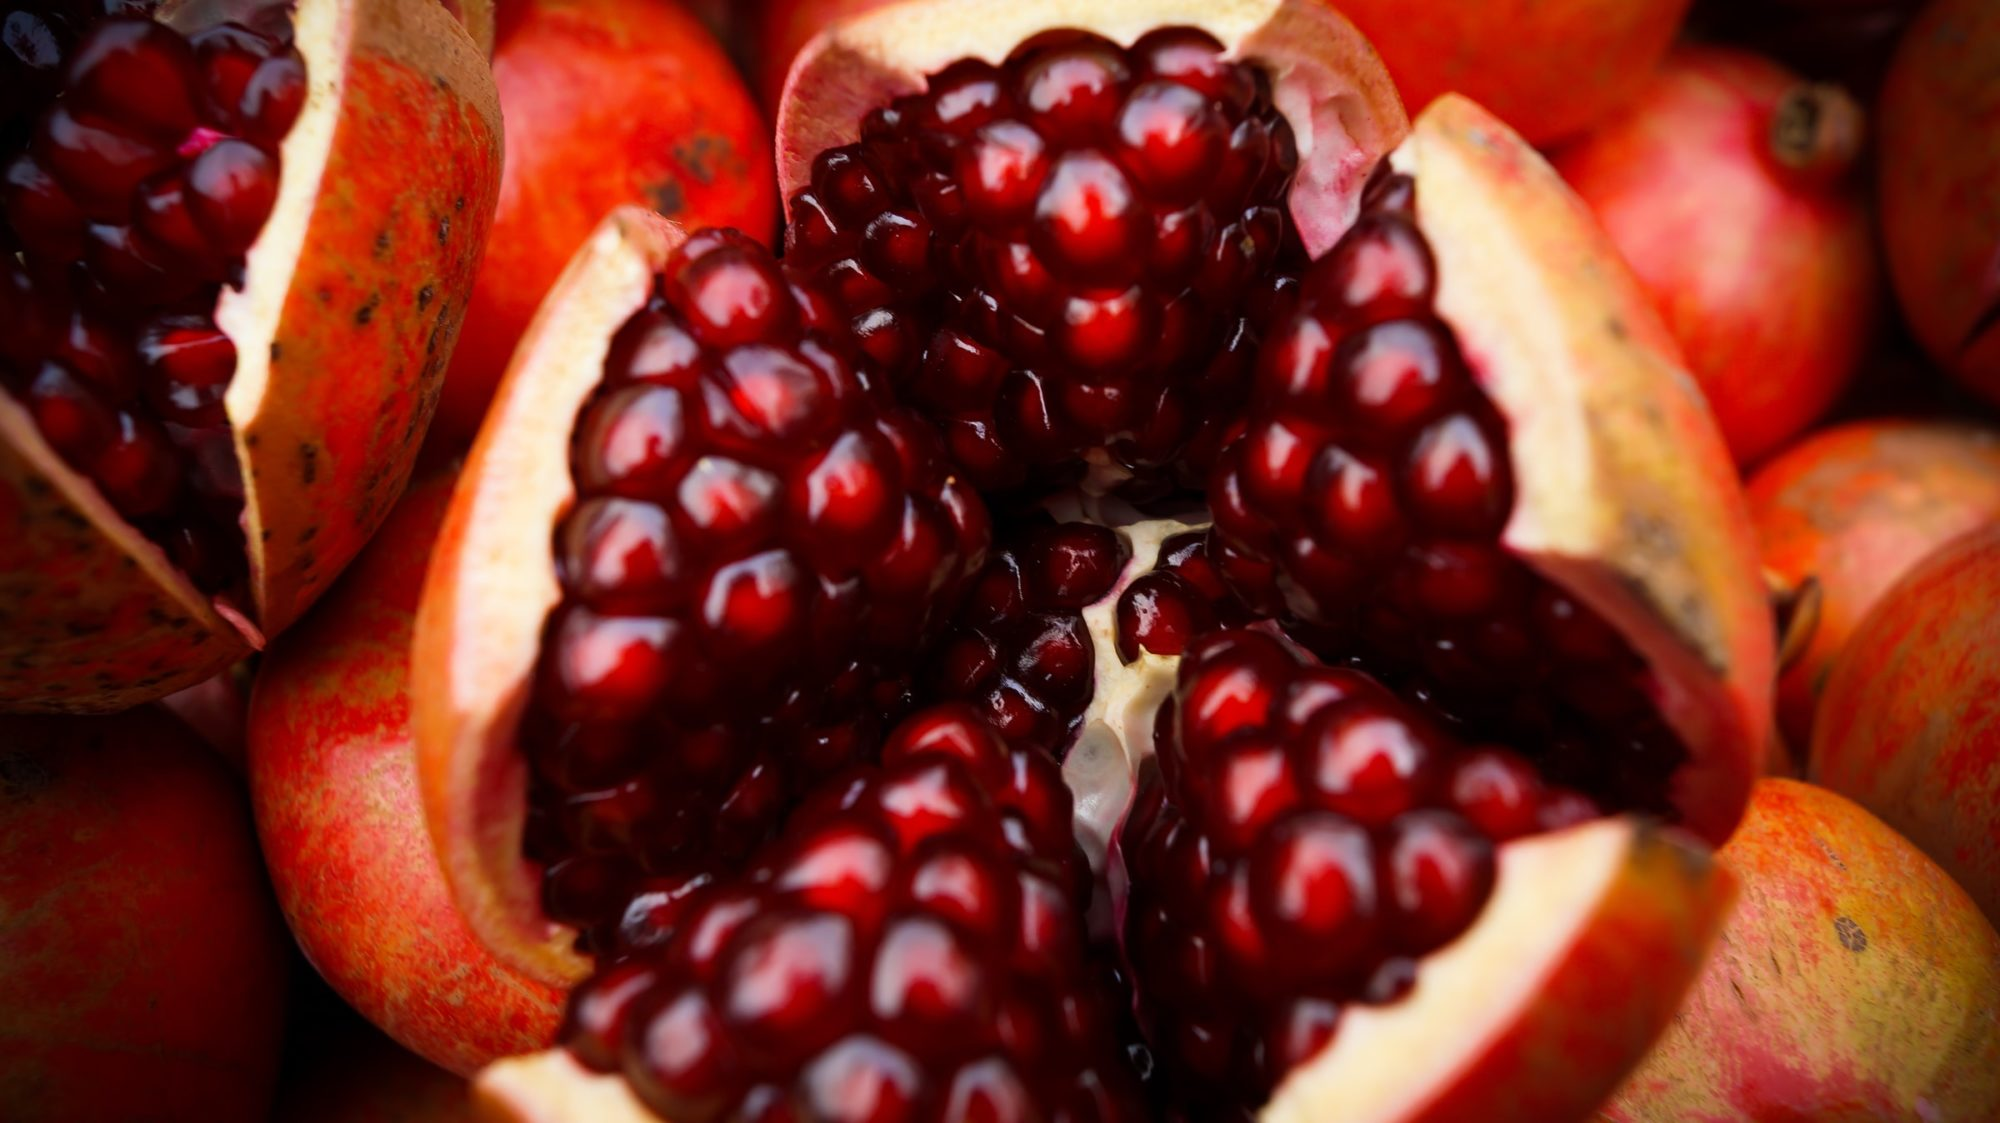 The 5 Best Anti-Aging Fruits For Your Skin and Health